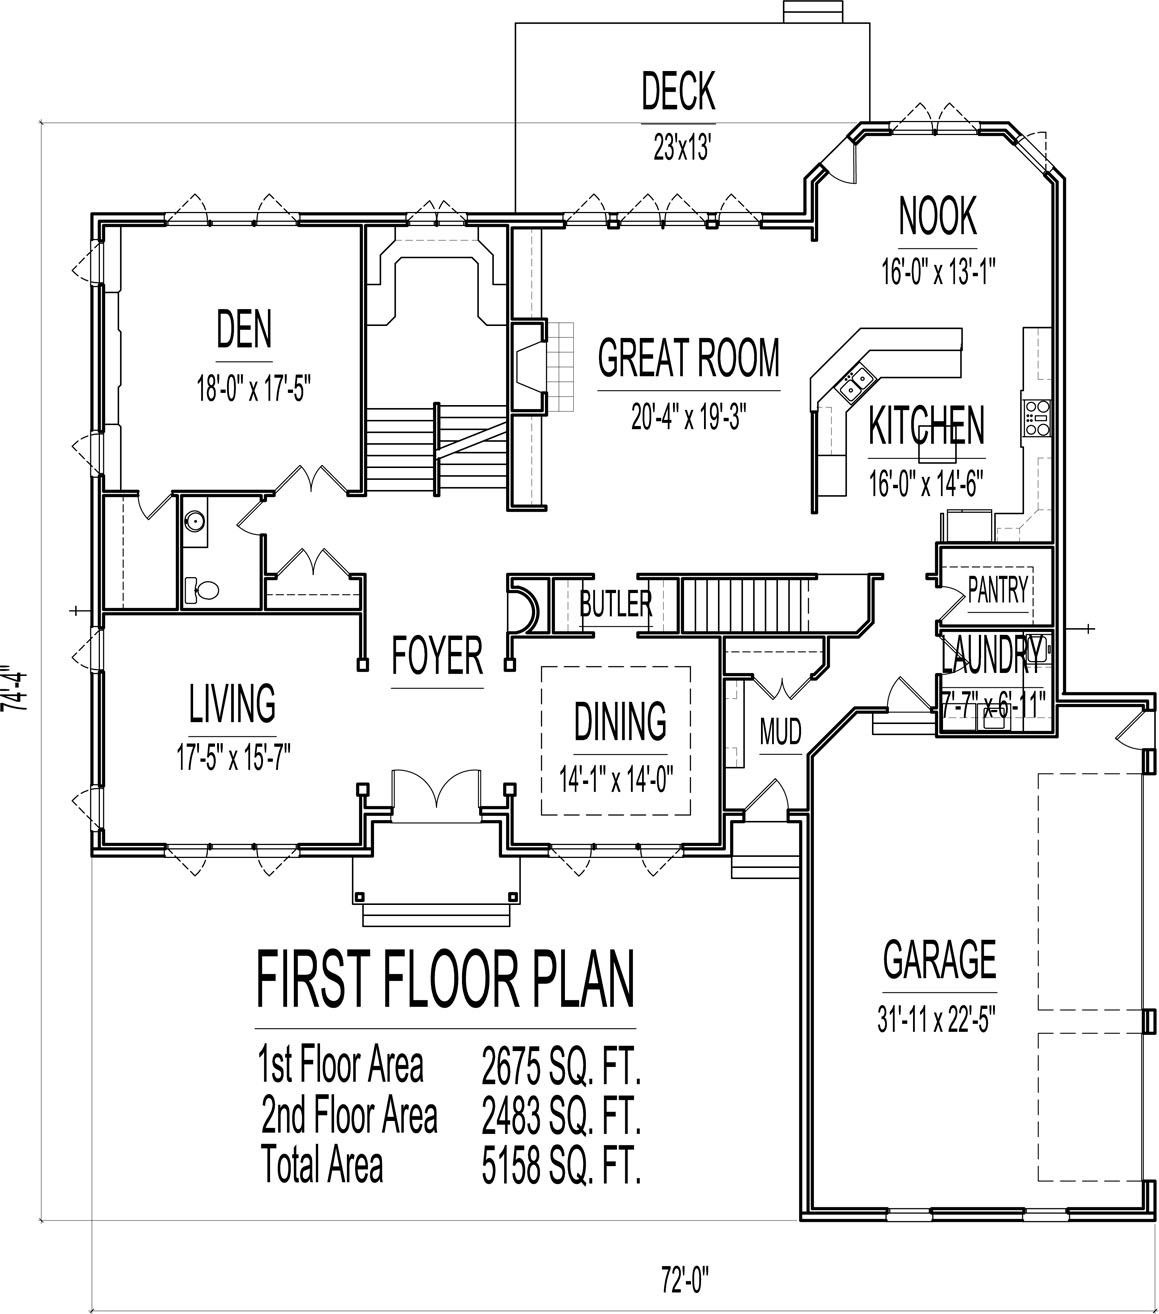 5000 sq ft house floor plans 1500 sq ft house 2 story 5 for 5000 sq ft home